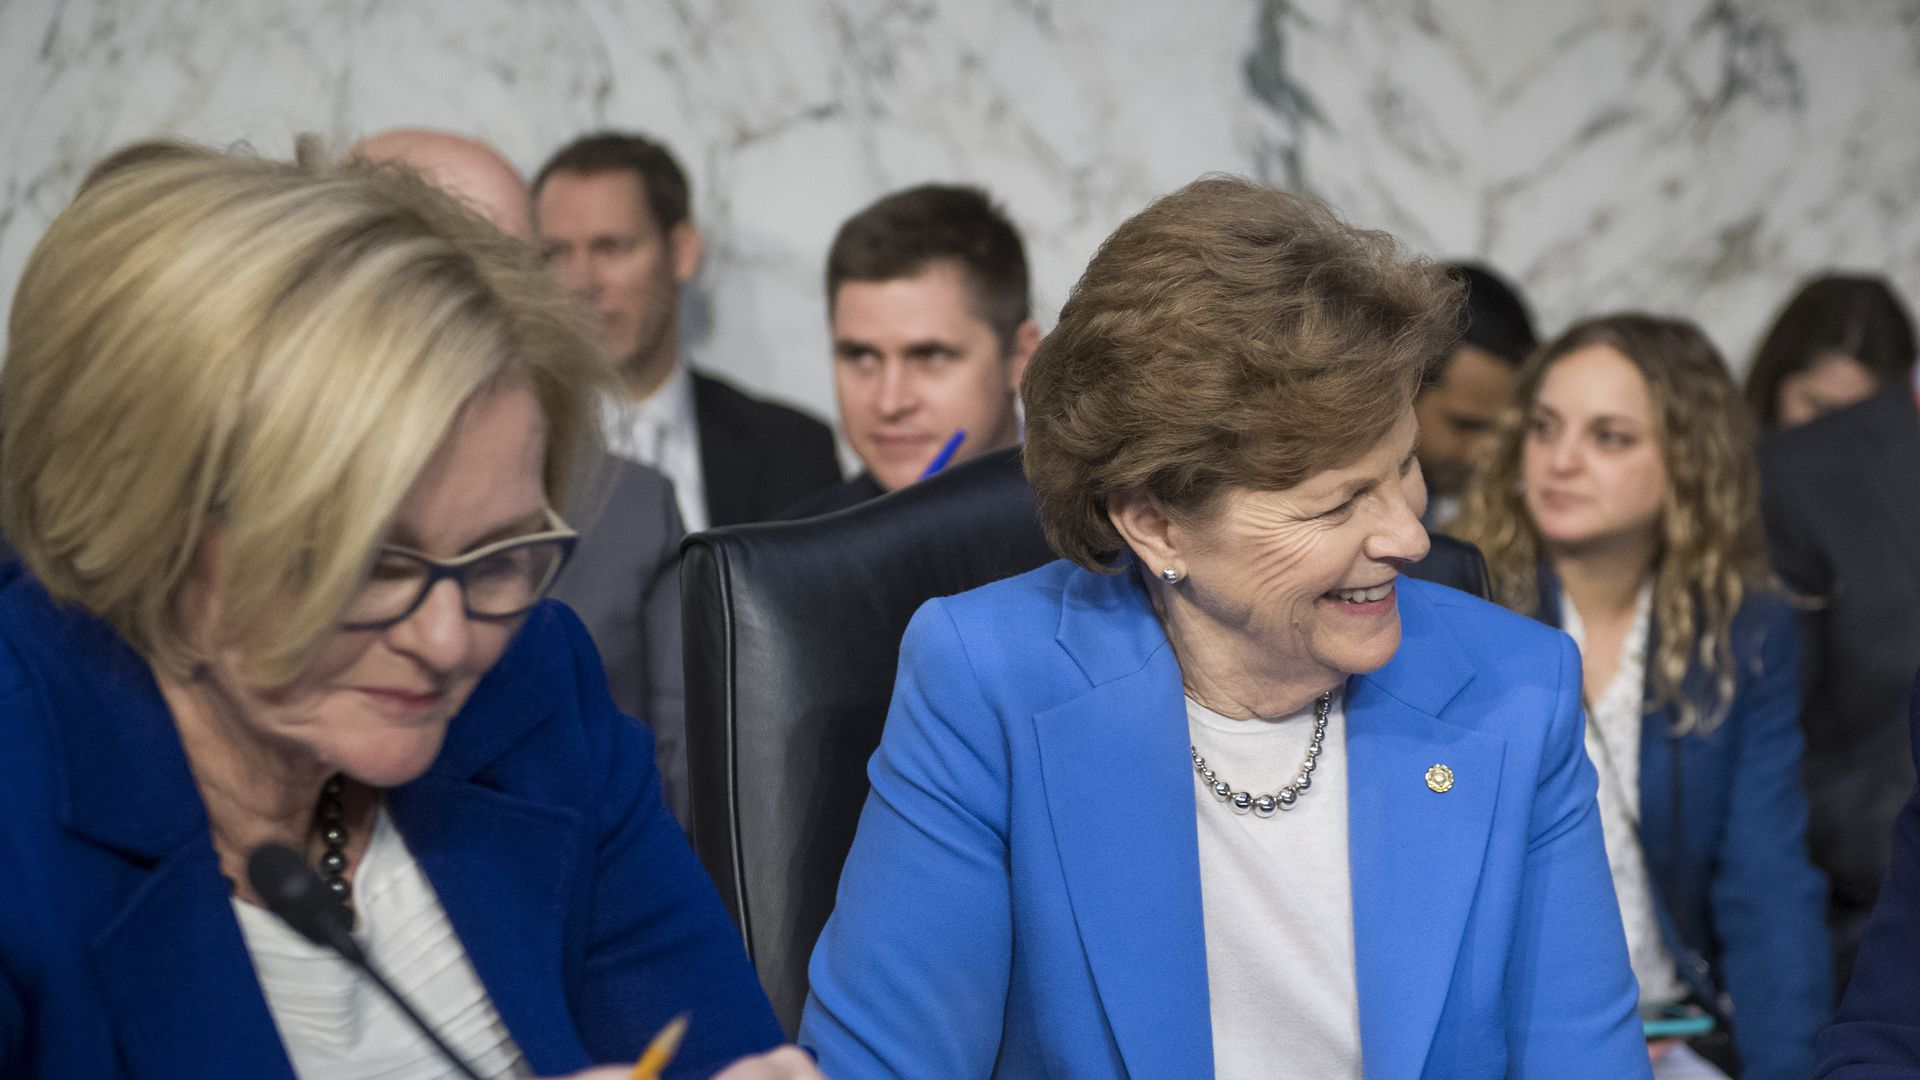 Senator McCaskill looks down at a desk and Senator Shaheen smiles.